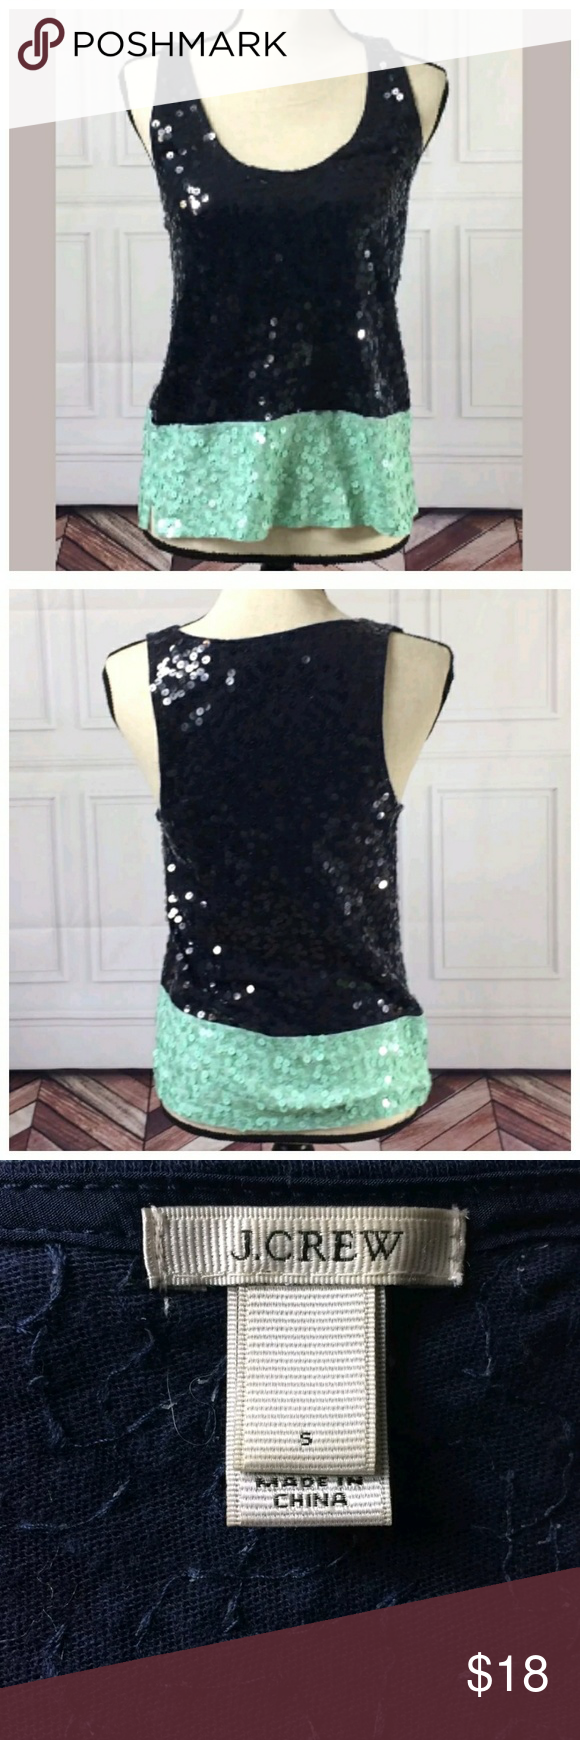 J. Crew Small Top J. Crew Small Top  Navy Blue Color Block Trim  Sequins  Sleeveless  Pullover  Pictures were taken in a smoke-free, pet-friendly environment away from the pets.  Very good used condition  See pictures for flaws (if any), fabric content, cleaning instructions and measurements.  I check all items for flaws and include any in the listing. If I have missed any, it is by mistake.  Thank you for looking at my store! J. Crew Tops